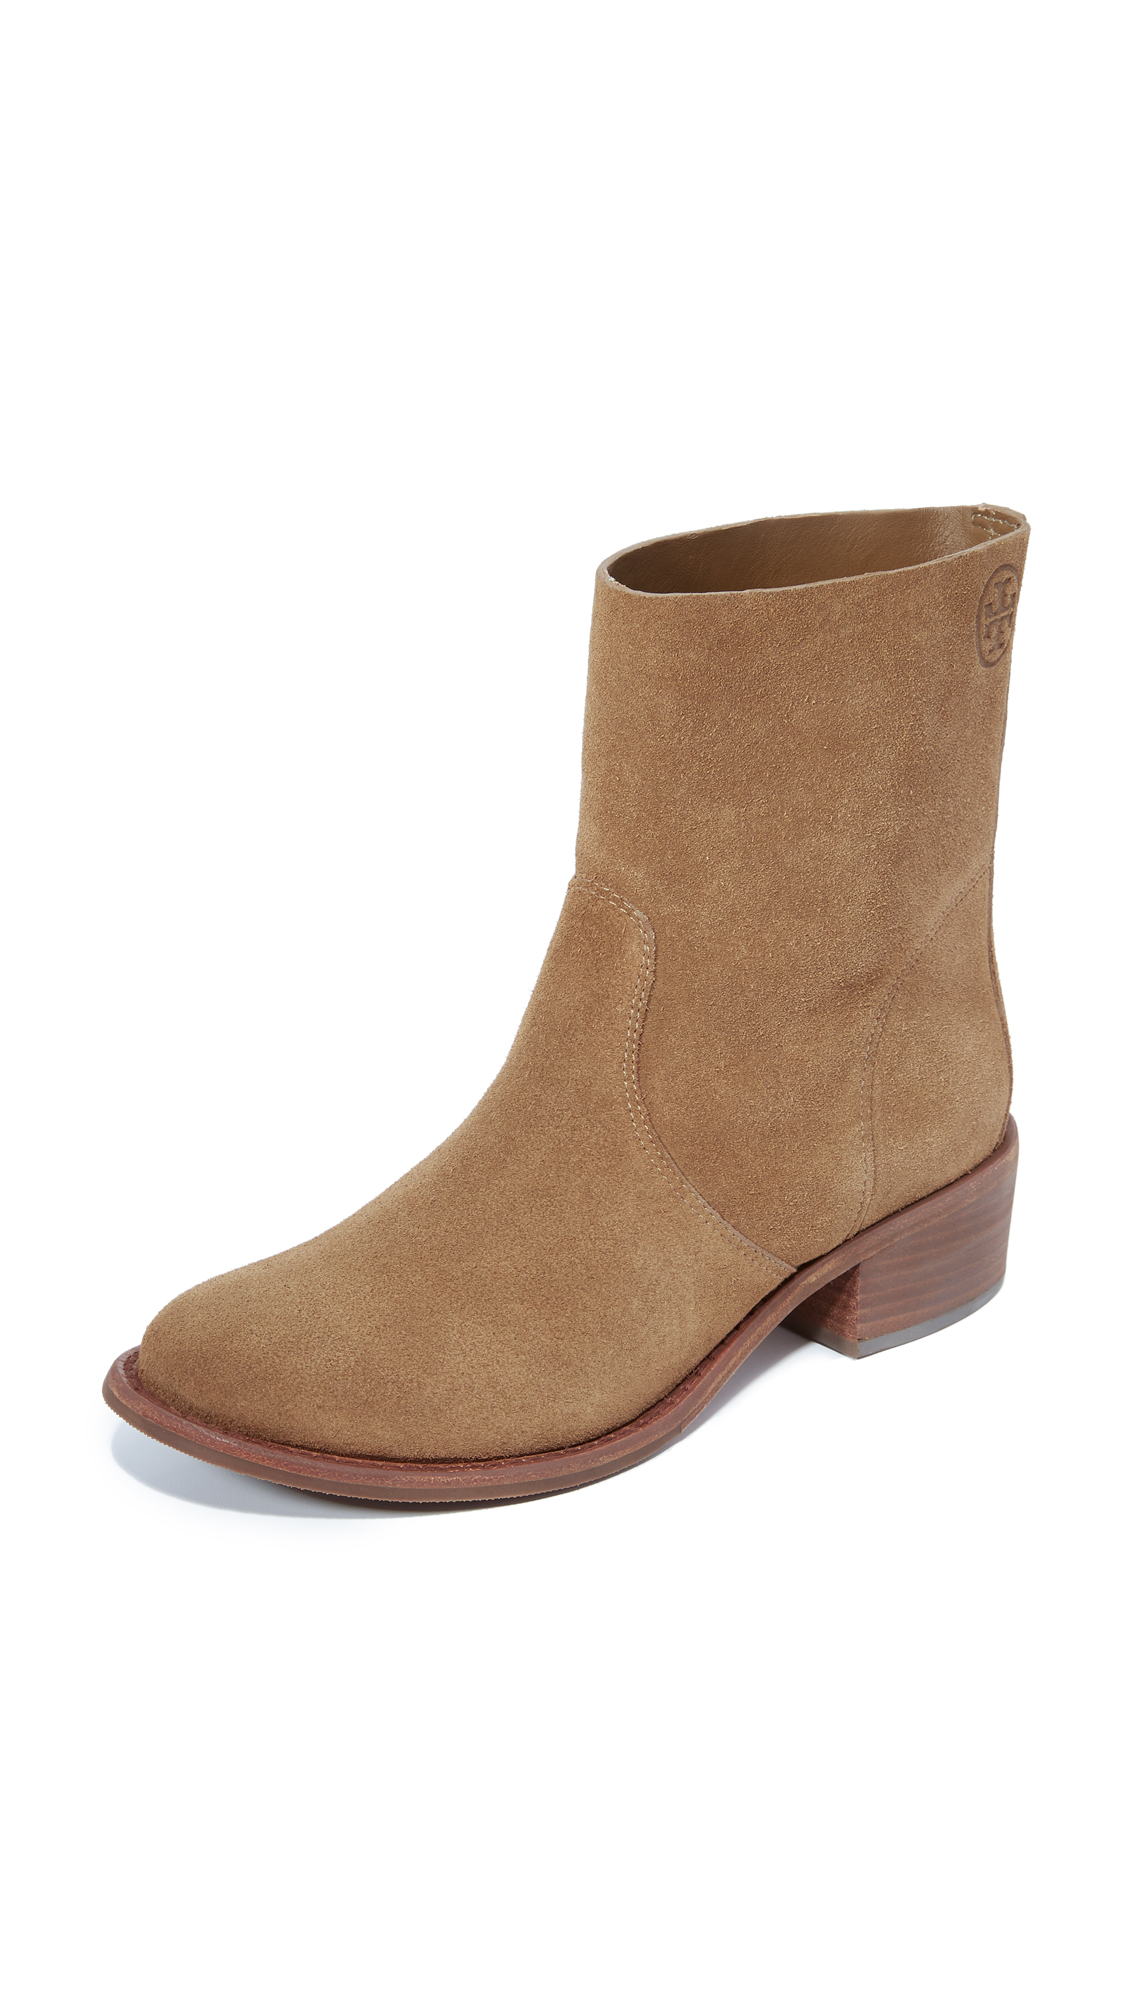 Tory Burch Siena Boots - River Rock